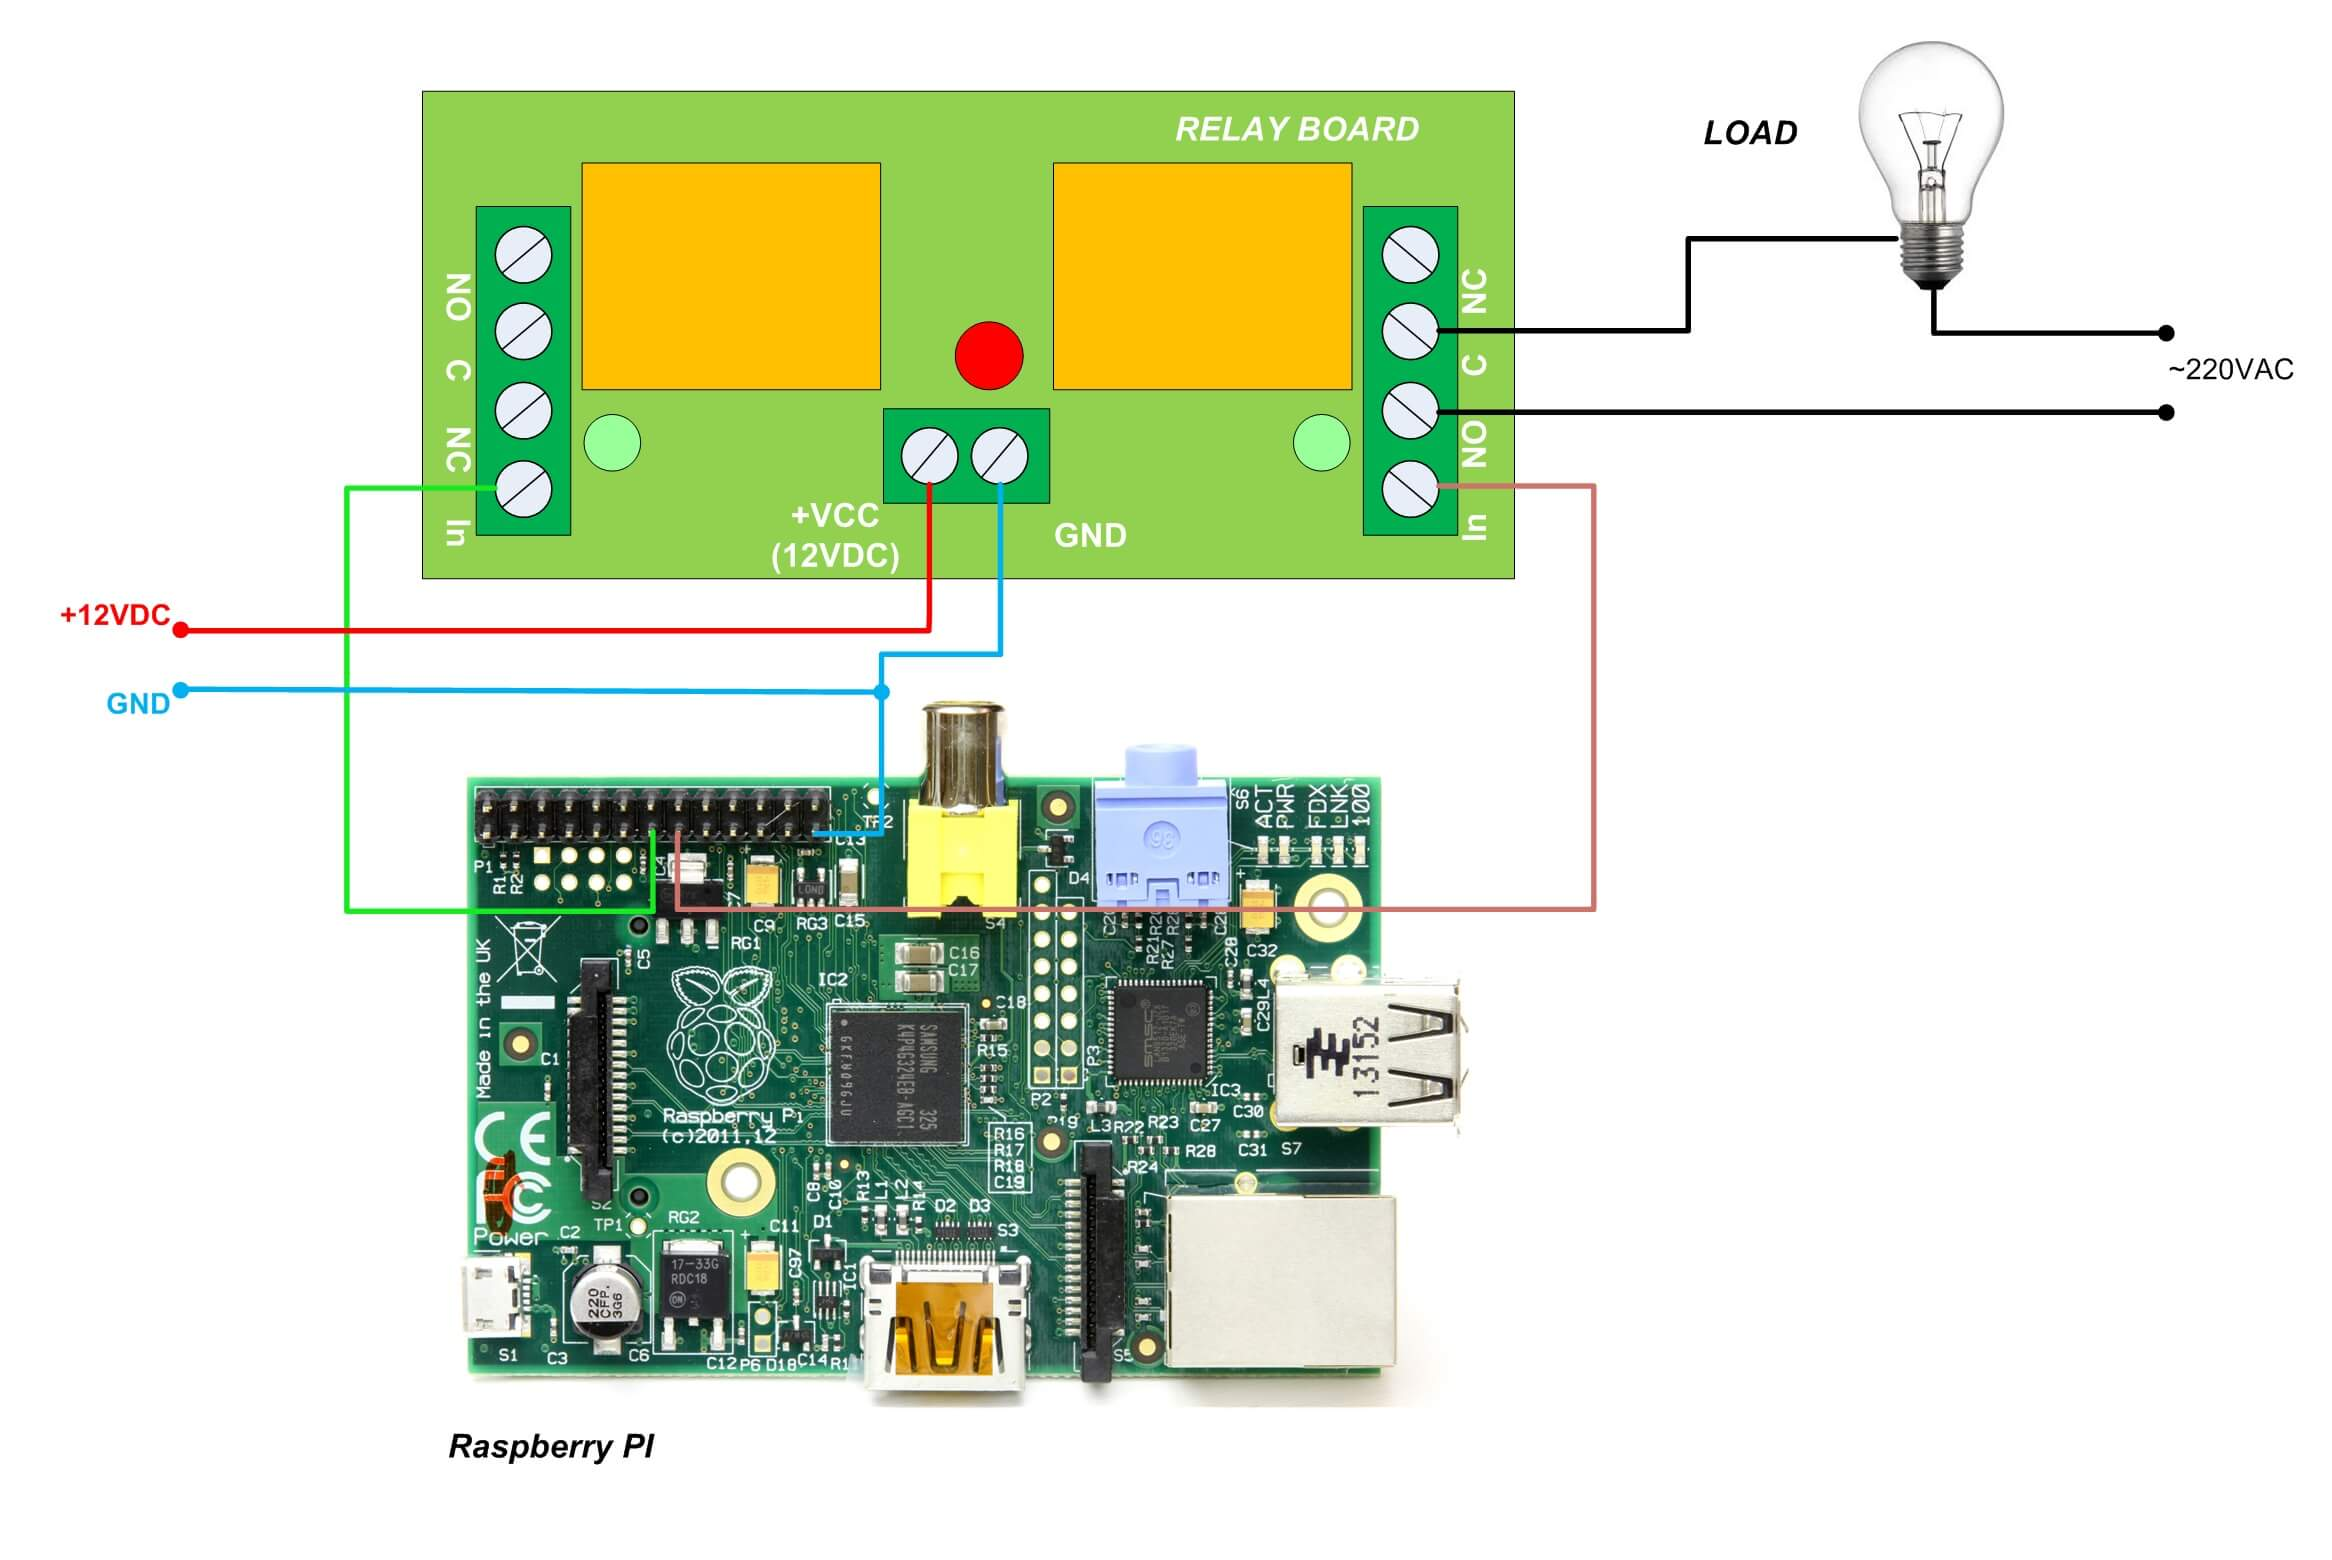 12 volt relay wiring diagram gigabit ethernet board 12v 10 channels for raspberry pi arduino pic avr connected to